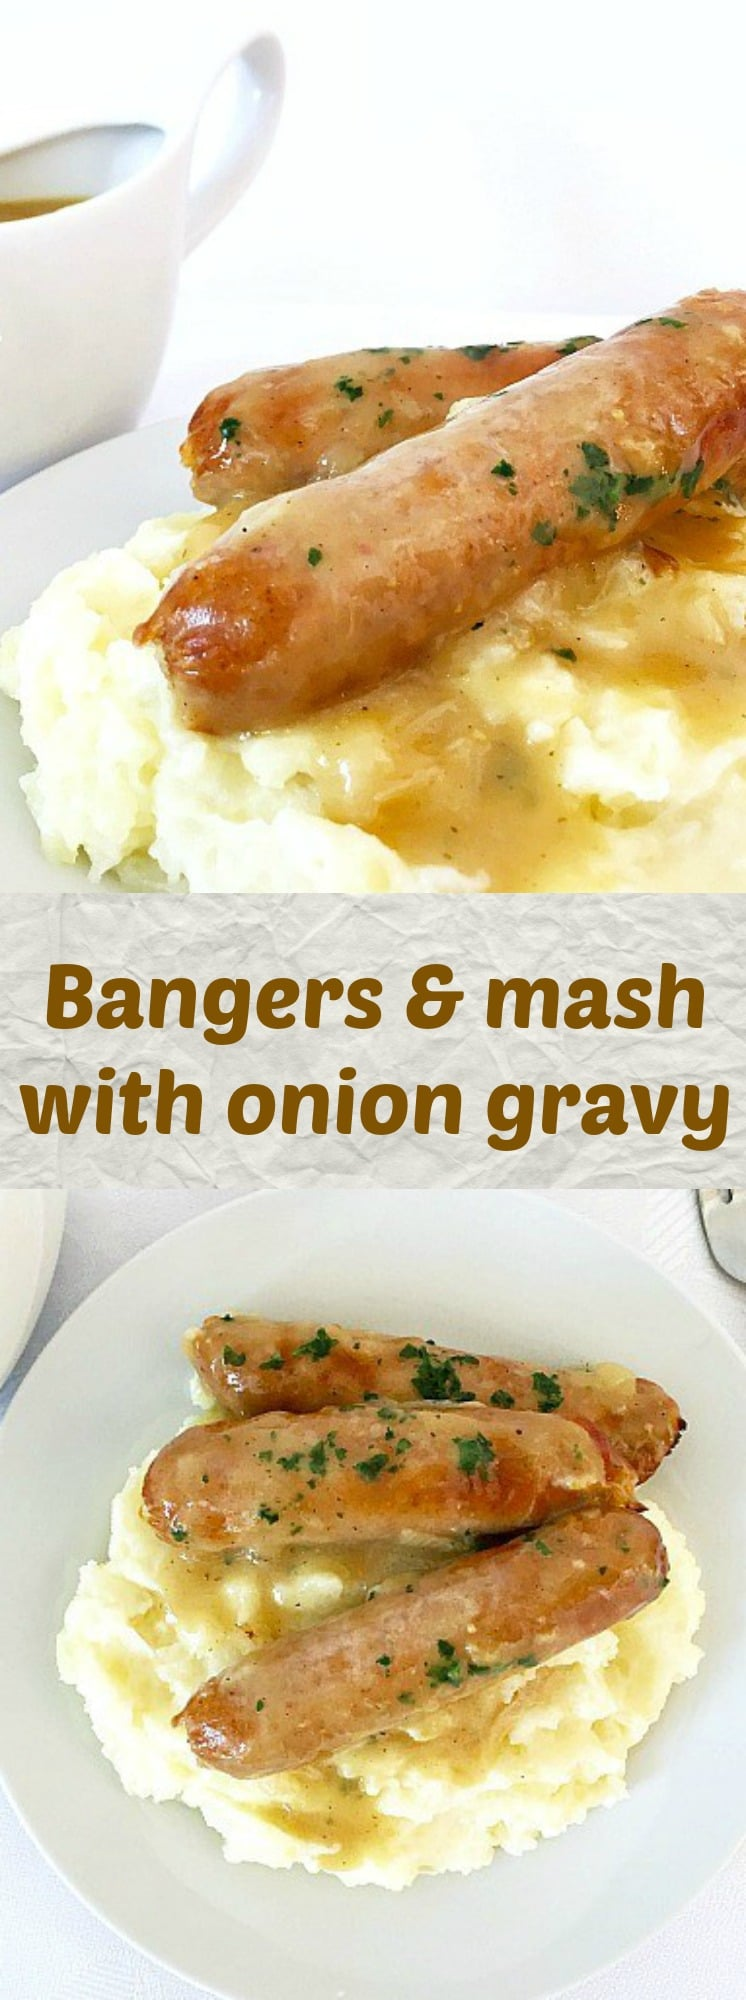 Bangers & mash recipe with onion gravy, s true British classic. Enjoyed throught the year, expecially on Bonfire Night, this recipe is sheer pleasure. That's what comfort food is all about.